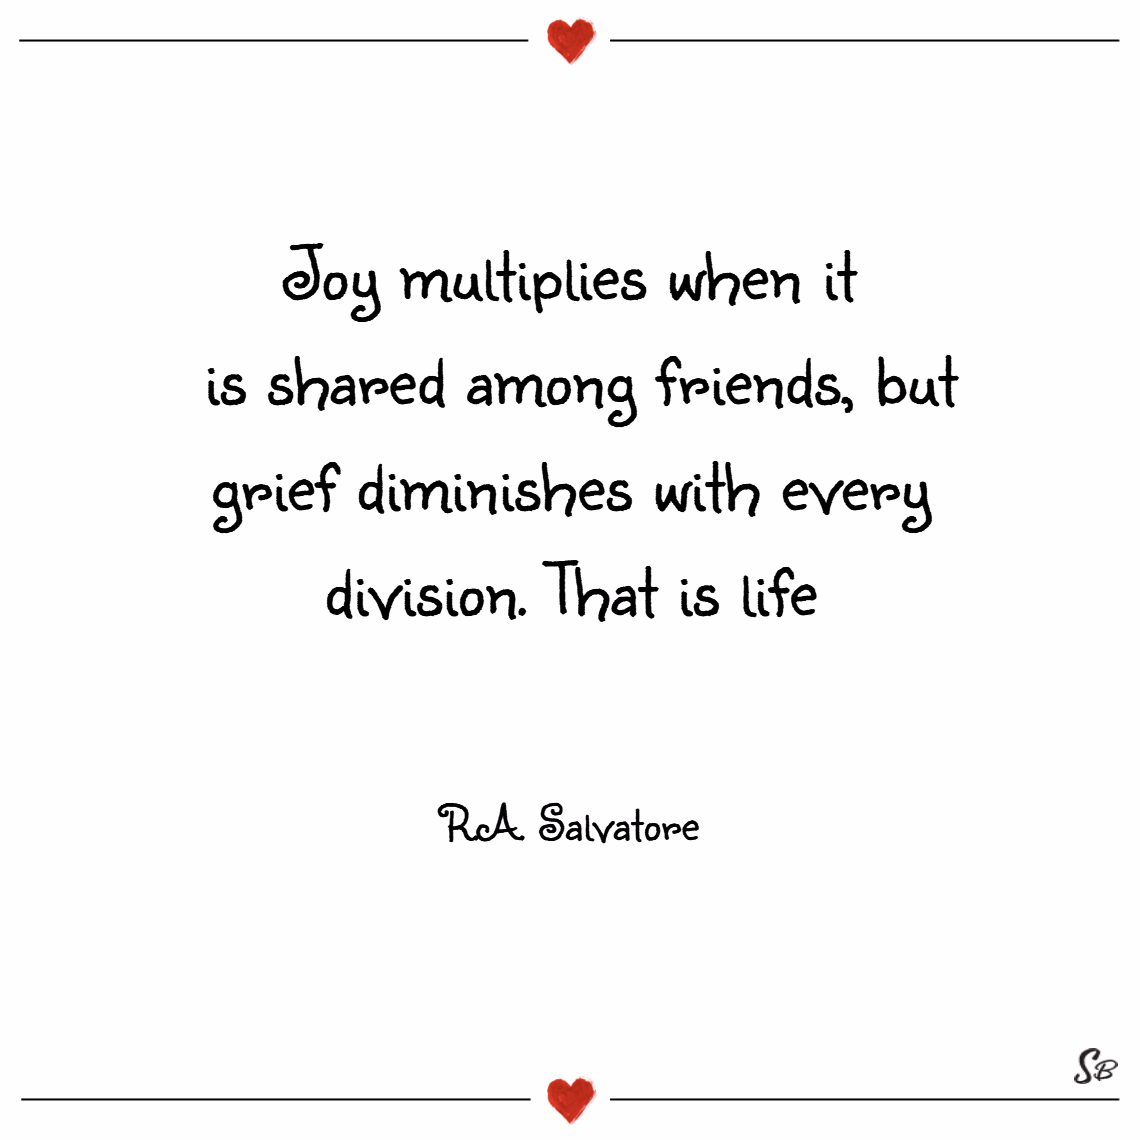 Joy multiplies when it is shared among friends, but grief diminishes with every division. that is life. – r.a. salvatore